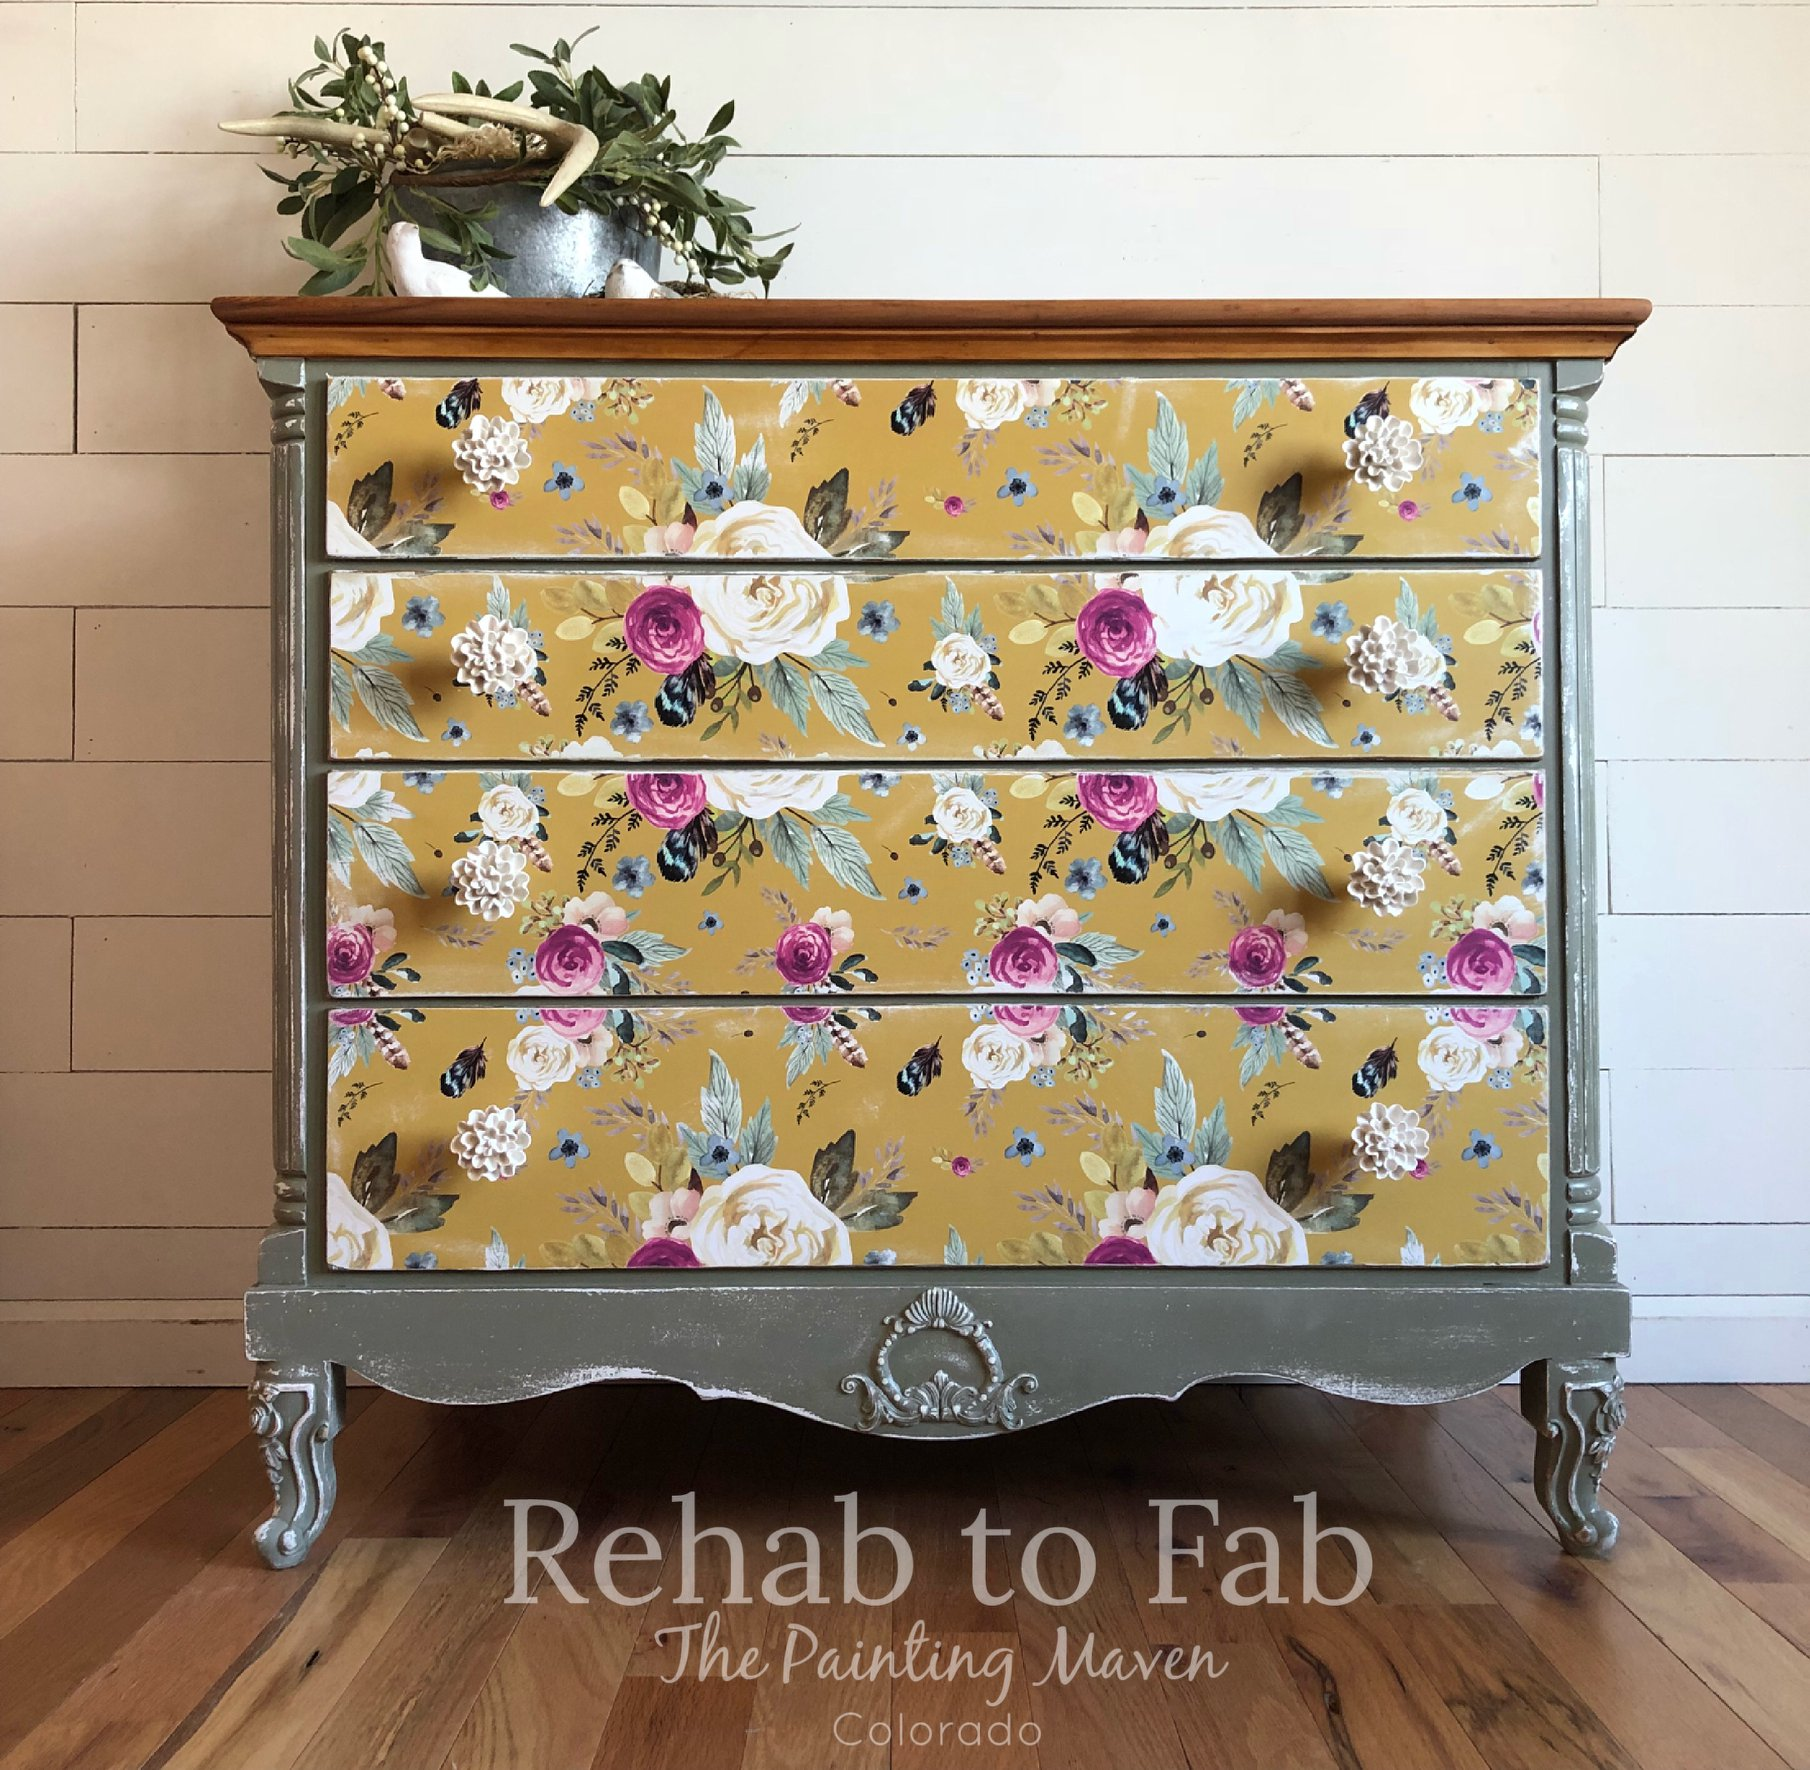 Home decor team member,  Stephanie Coon of Rehab to Fab  used an applique at the bottom of this pretty dresser to add fun detailing that adds so much personality to her piece.